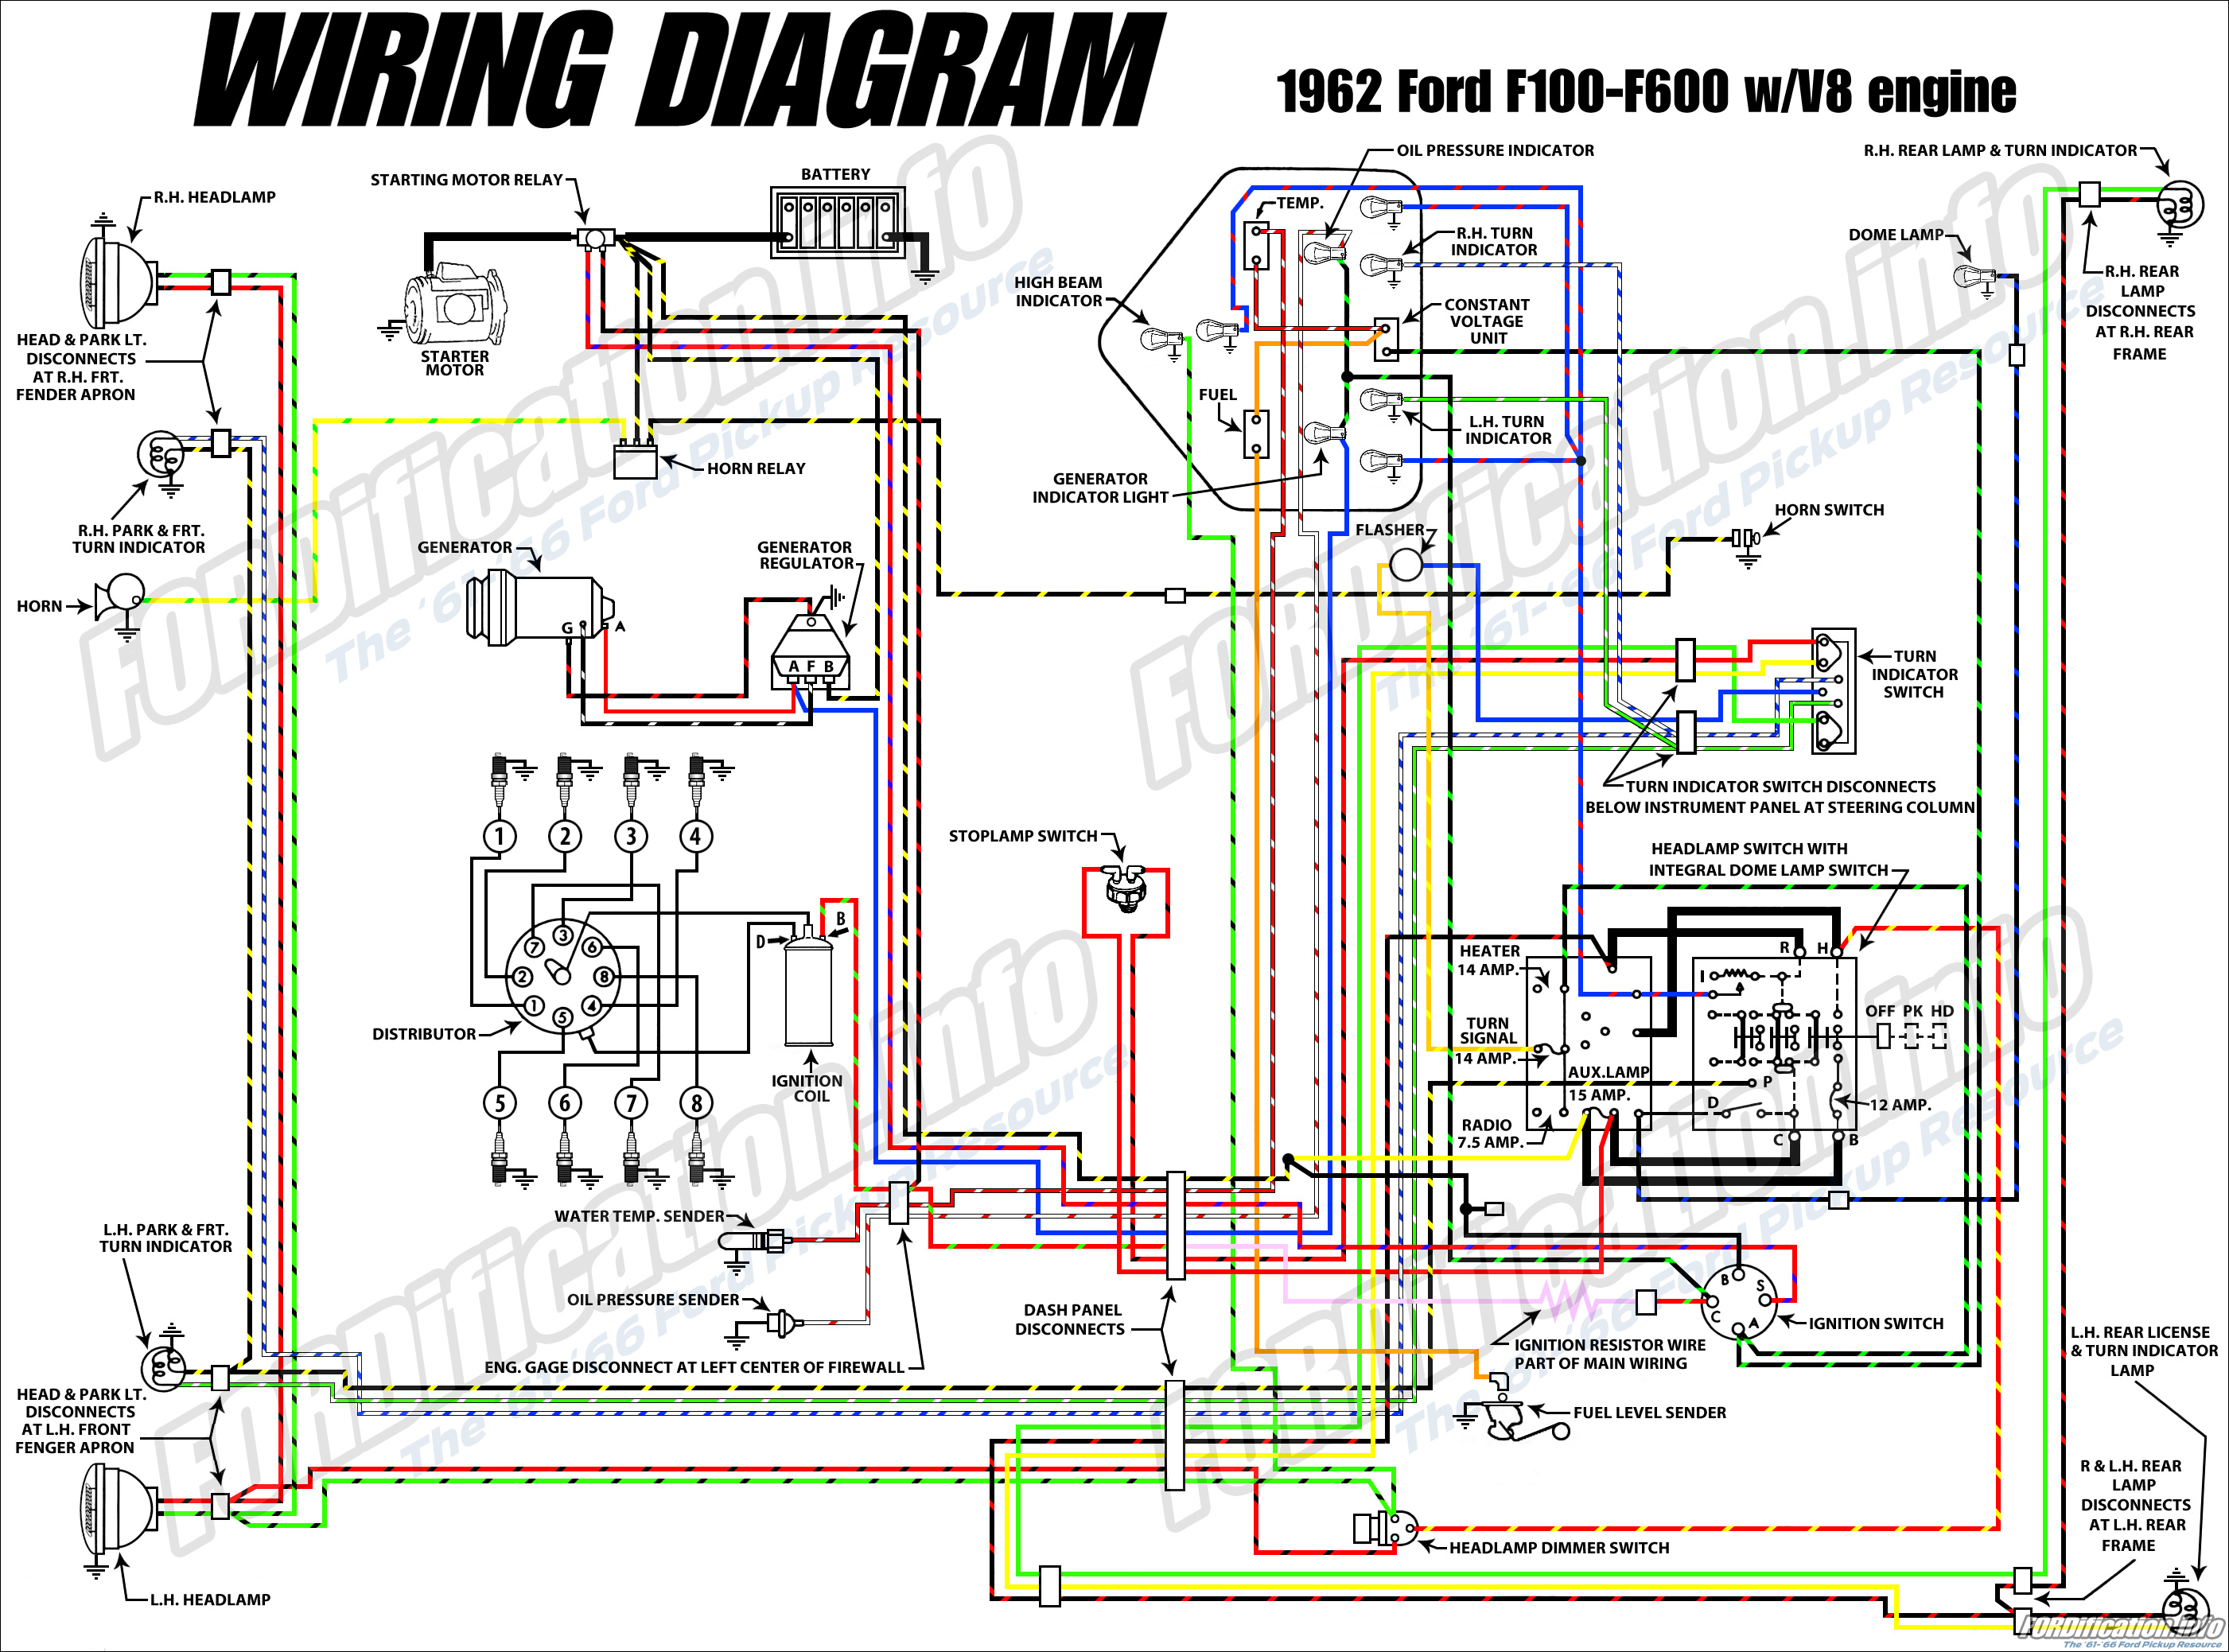 ford f100 wiring wiring diagram dash ford f650 wiring diagram 71 ford truck wiring diagram #15